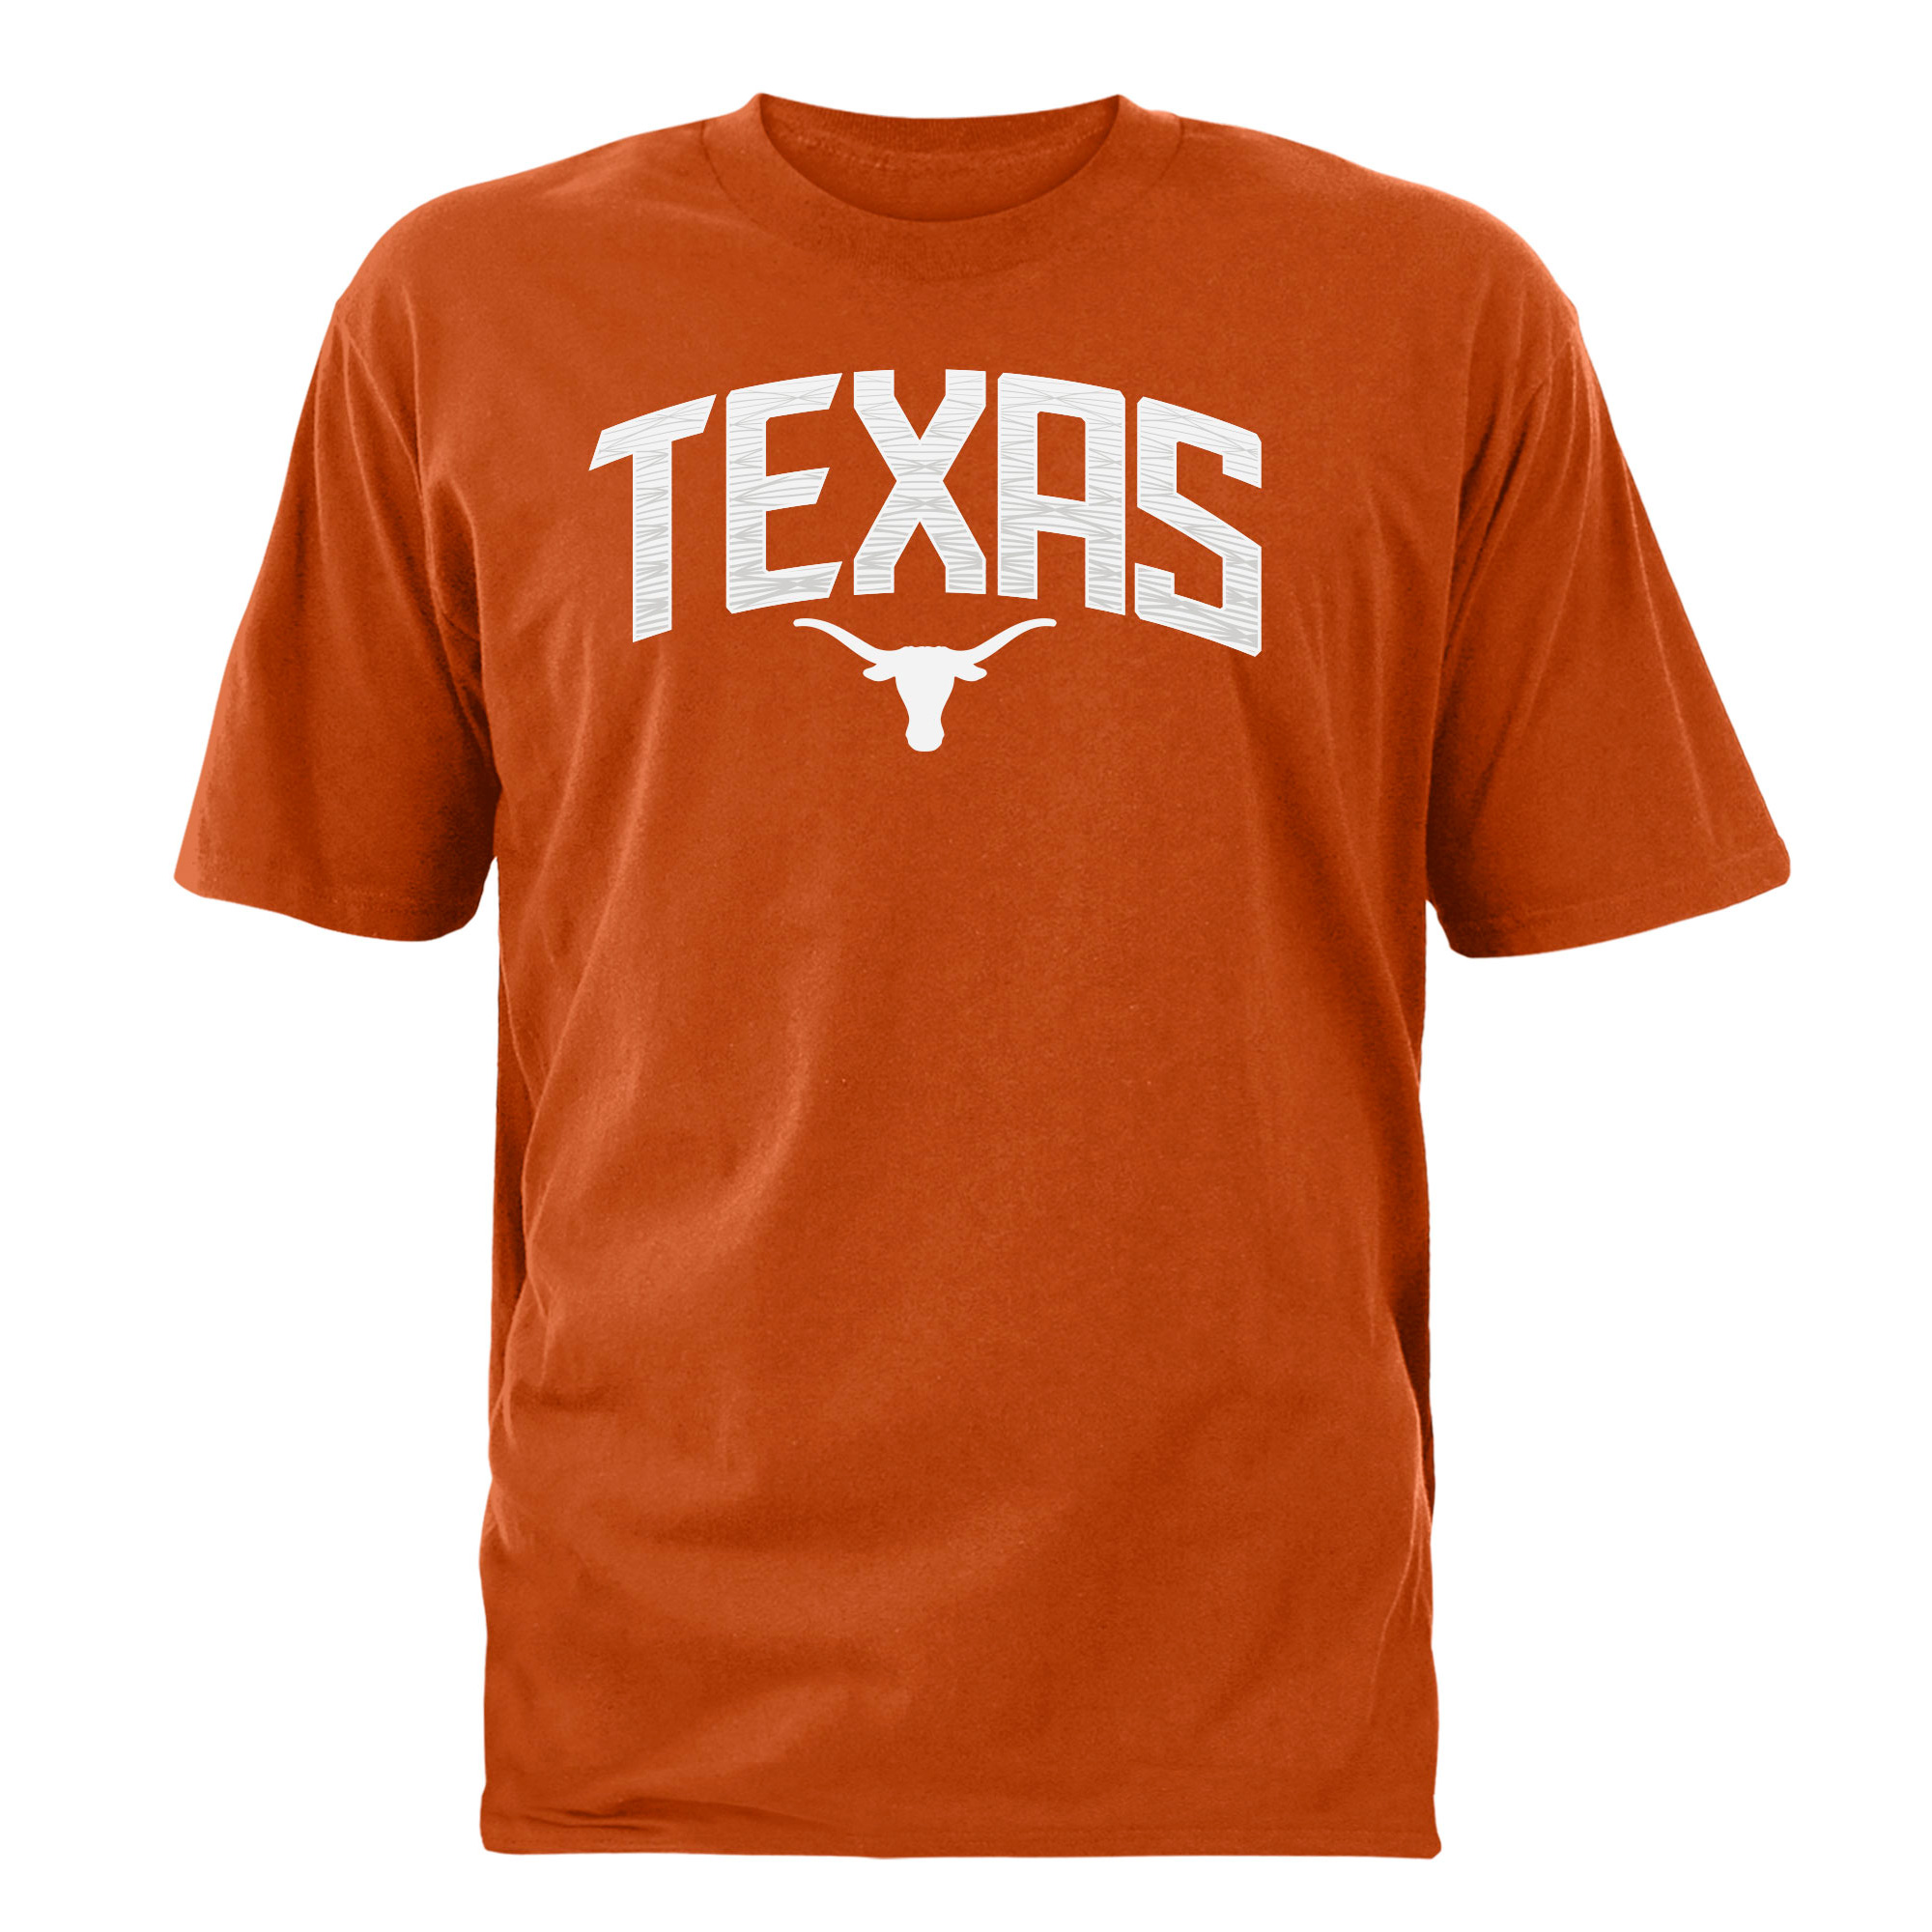 Men's Texas Orange Texas Longhorns Eclipse Arch T-Shirt